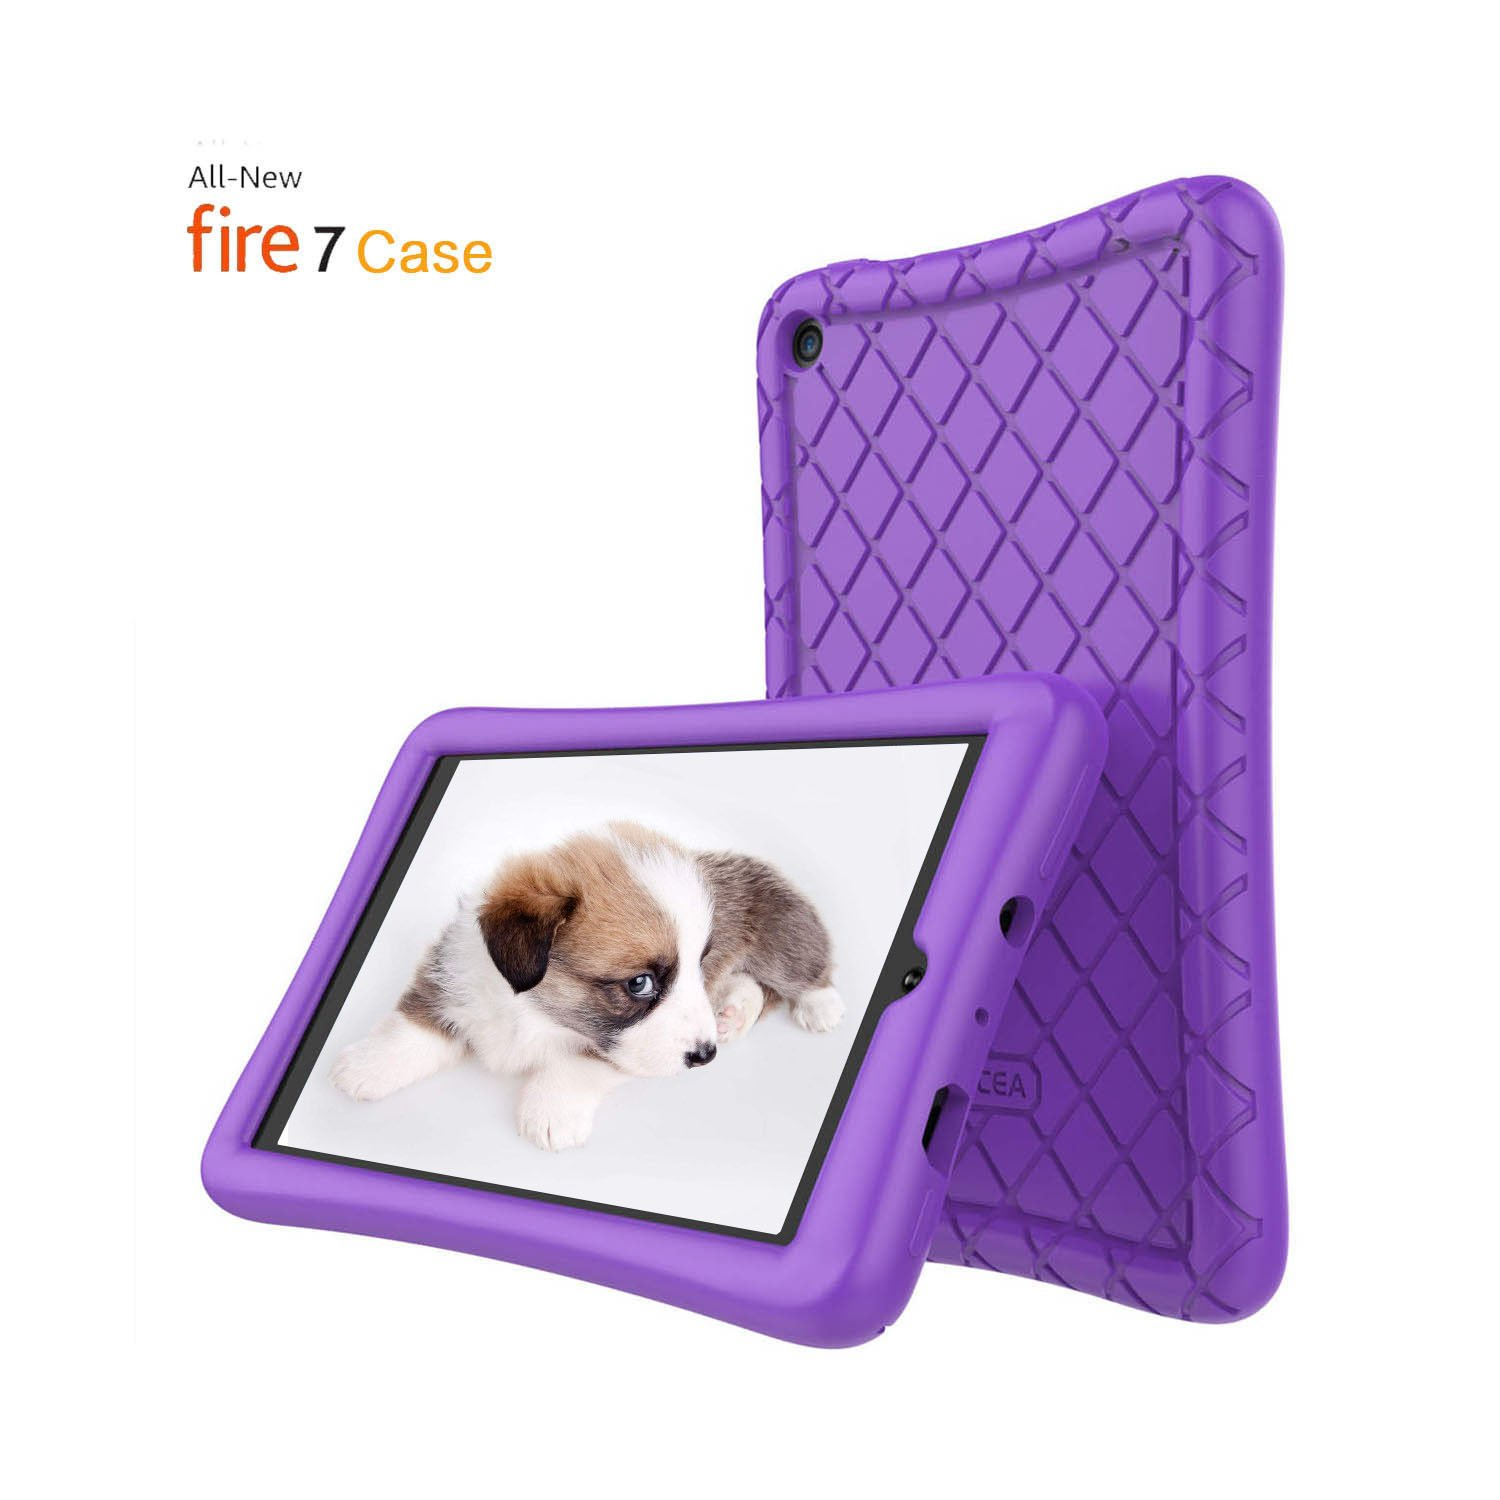 Fire 7 Tablet Case,Soft Silicone Case for All-New Amazon Fire 7 Tablet(7th Generation, 2017 Release) - [Anti Slip] Shockproof Back Cover [Kids Frienly] for Fire 7 Light Weight Purple